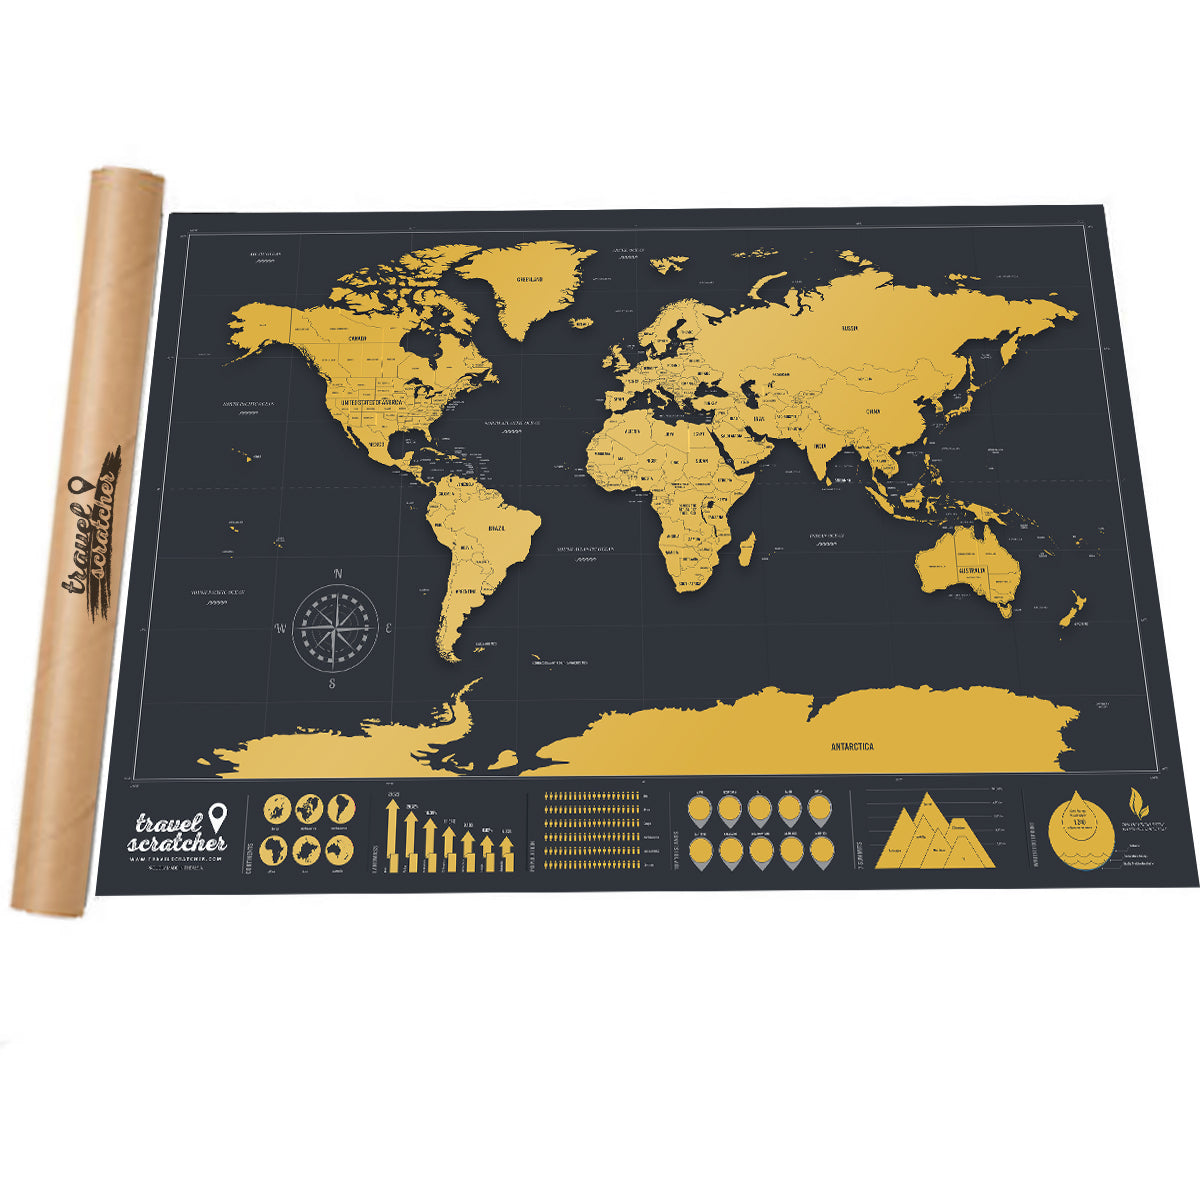 Where to buy Scratch-off World Maps - TravelScratcher